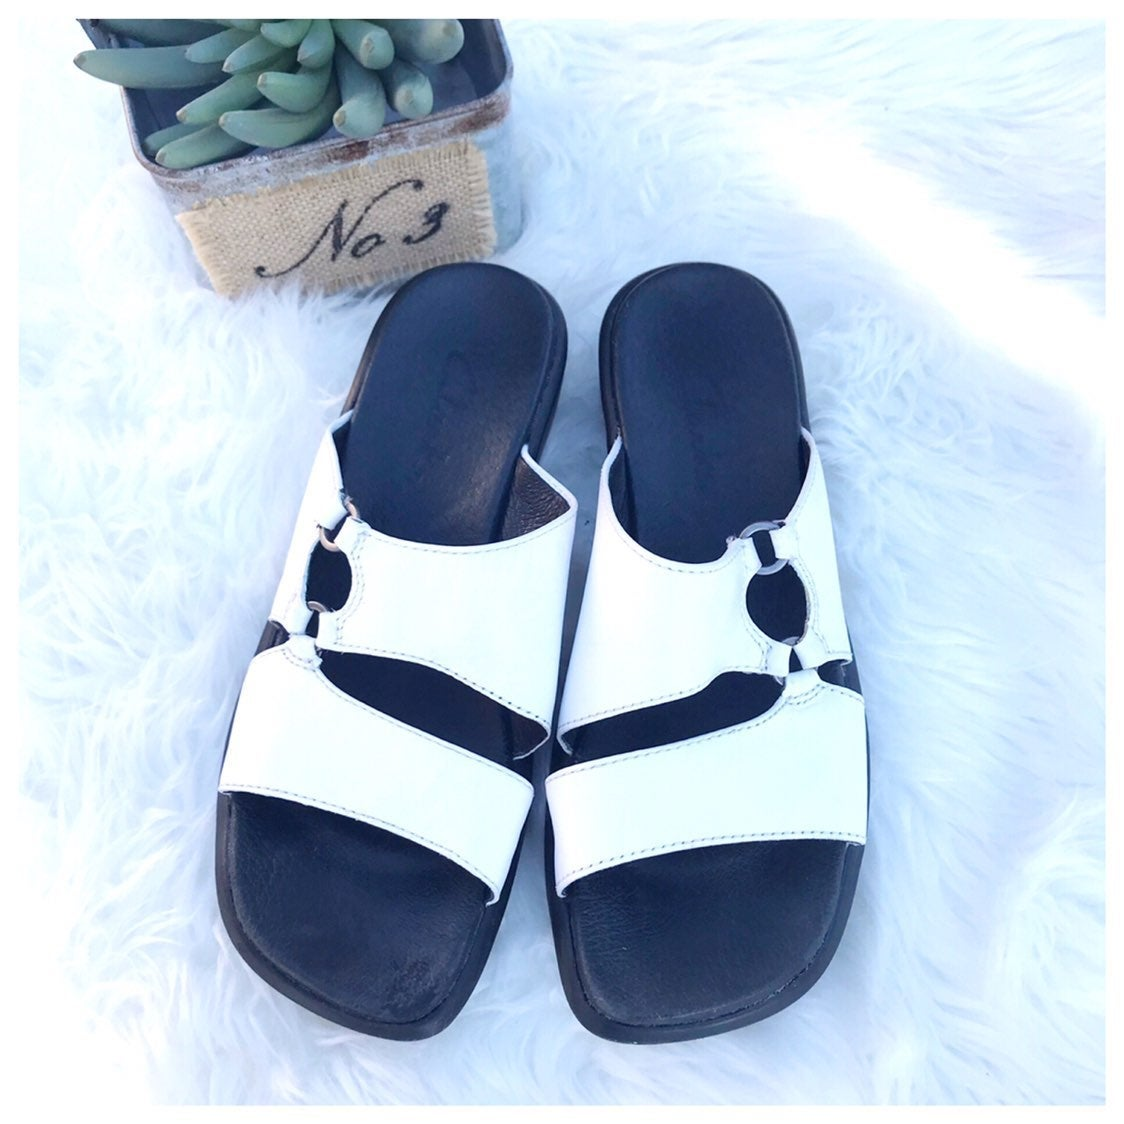 Clarks White Cut Out Wedge Sandal